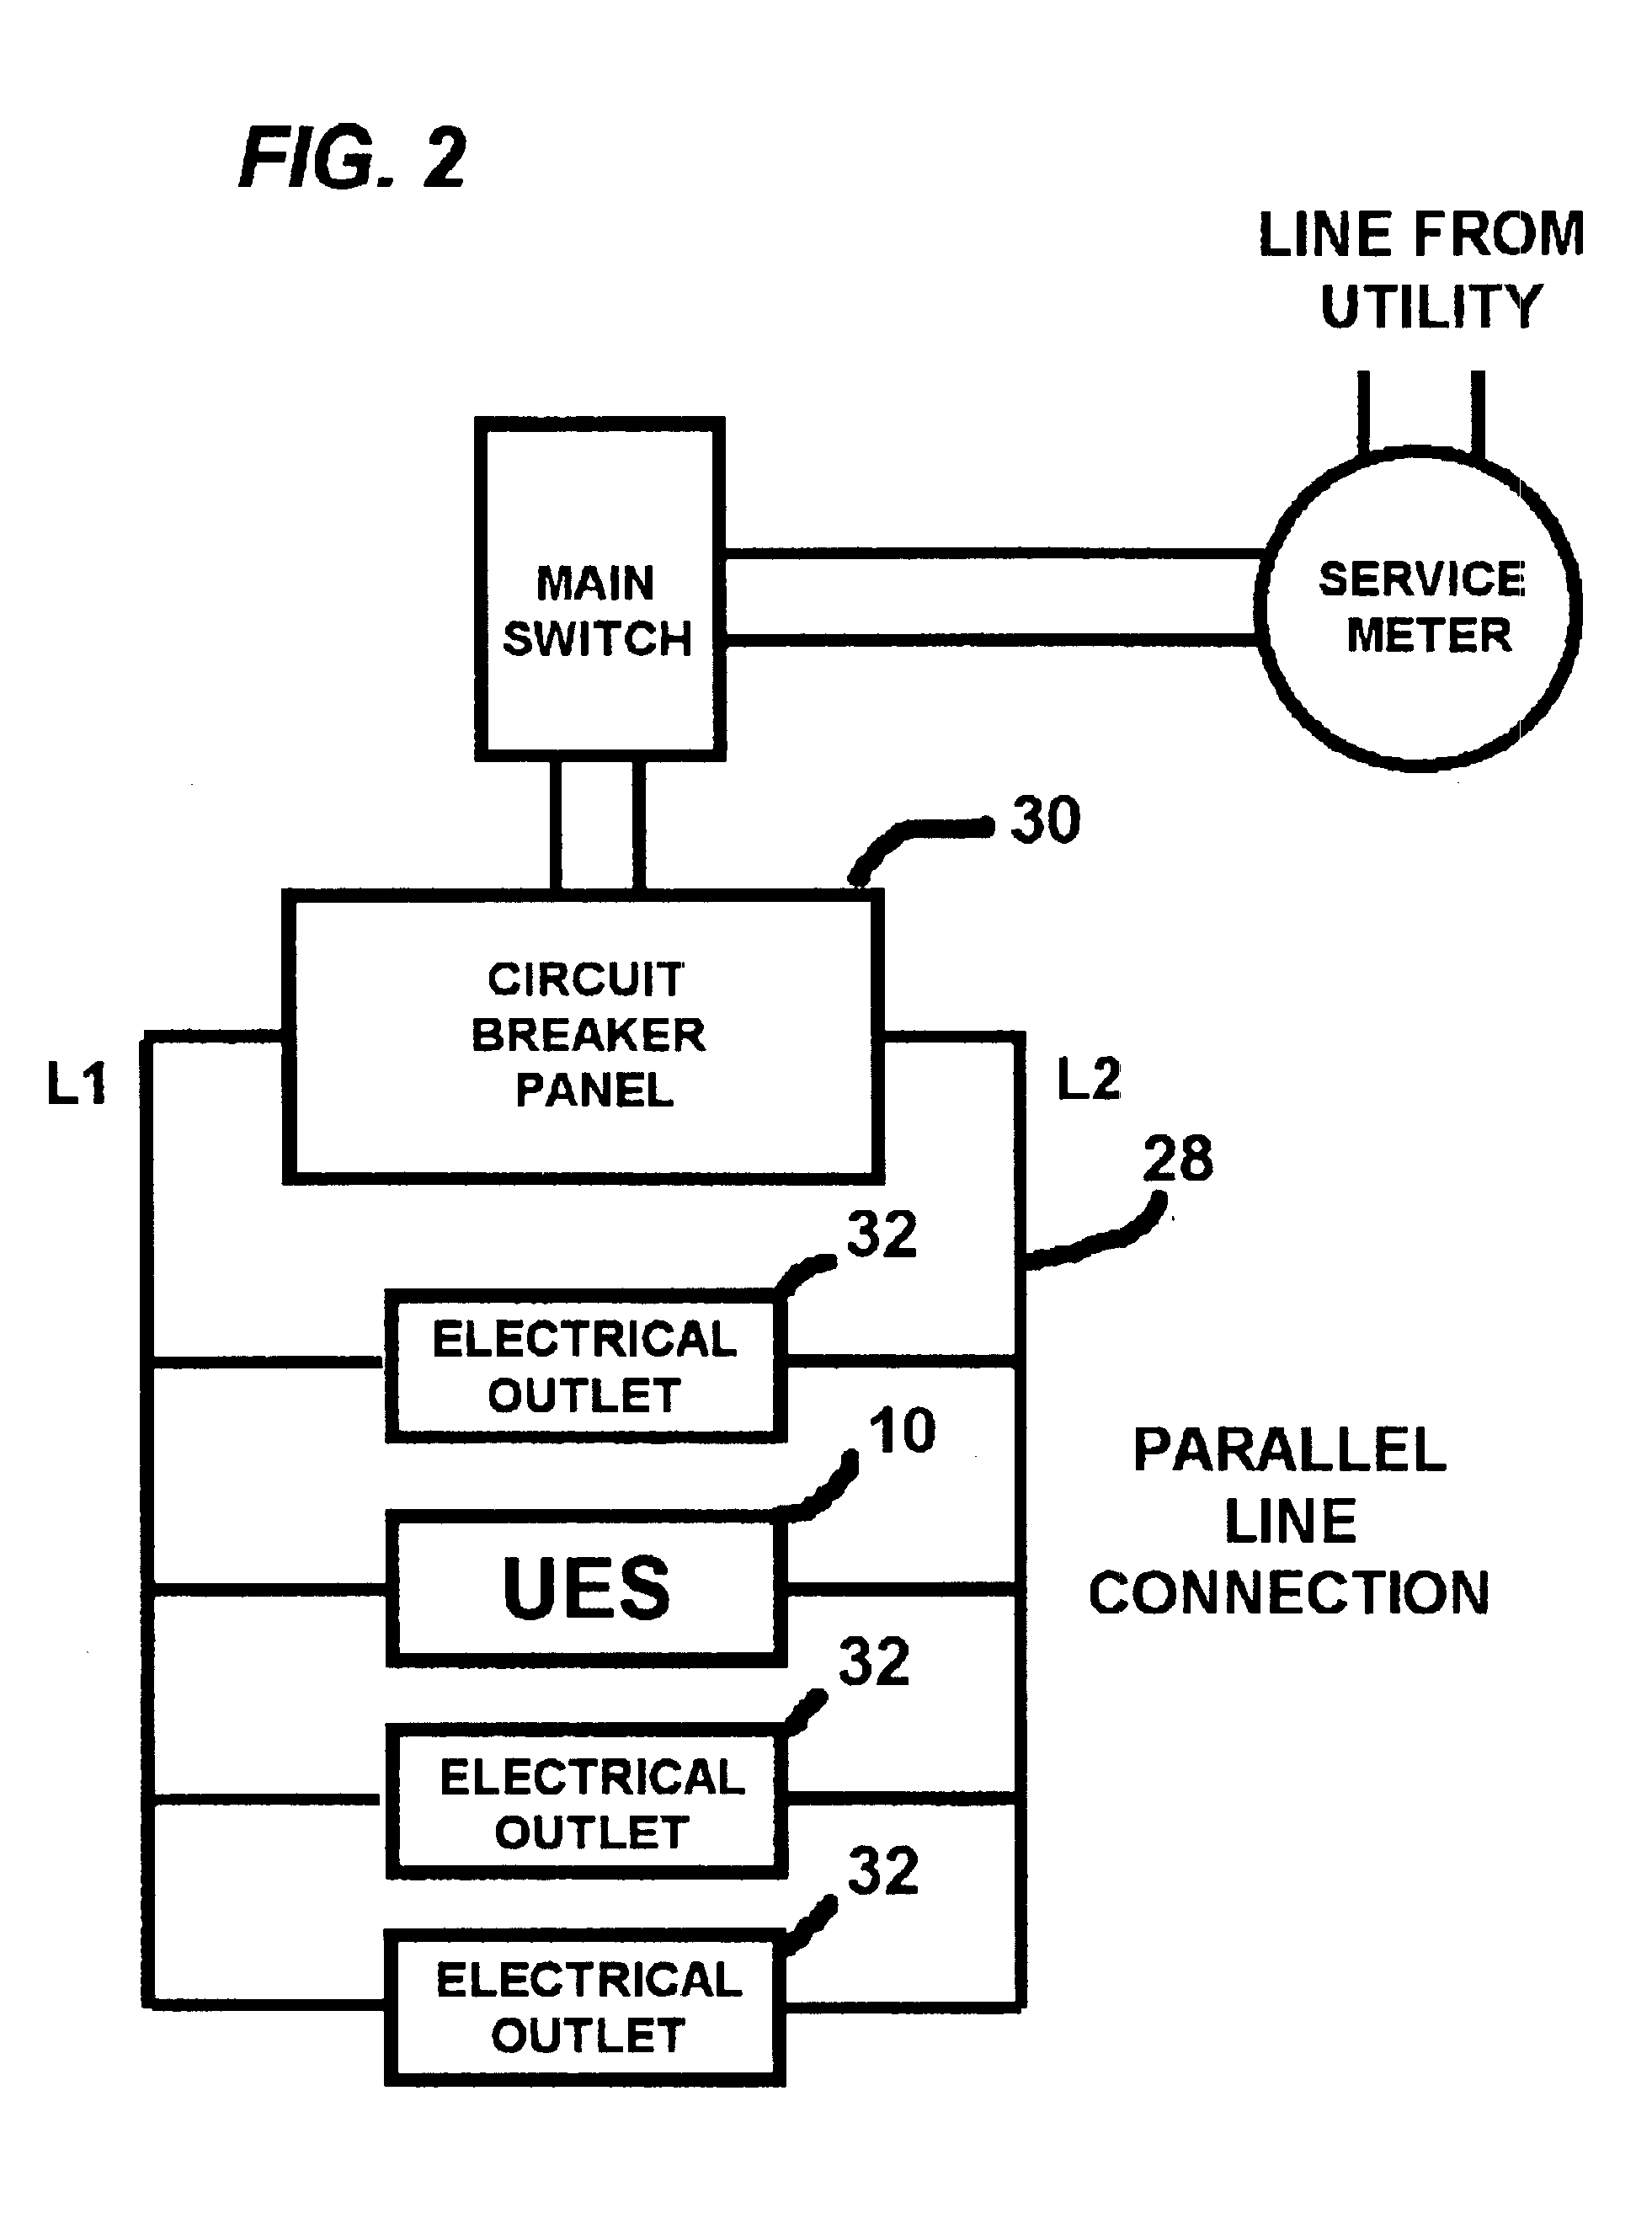 Electrical Energy Drawing At Free For Personal Use Outlet Google Patents On Wiring A Light Switch Off Gfci 1962x2641 Patent Us6801022 Universal Saver